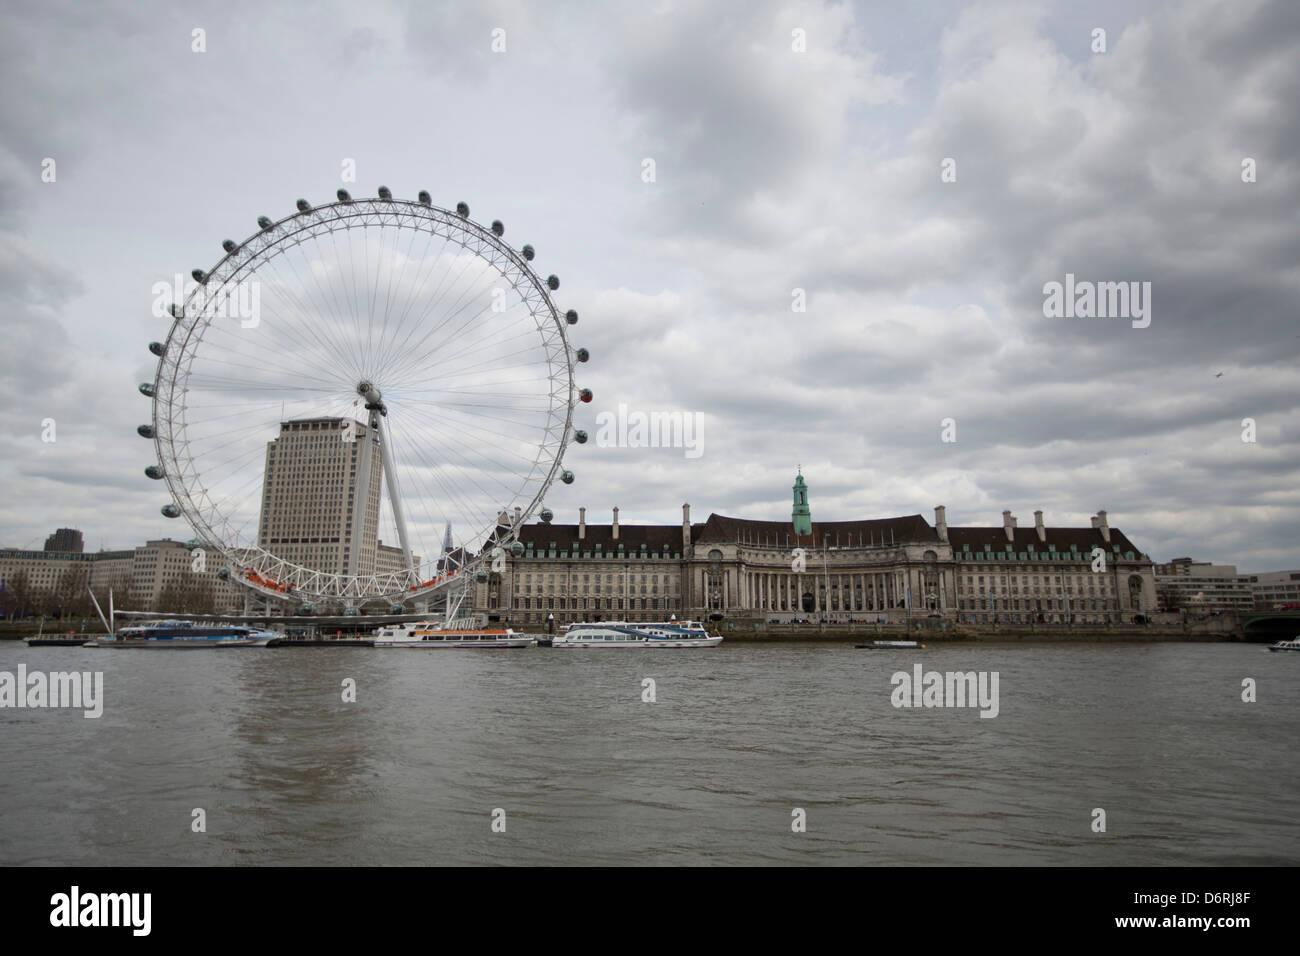 The London Eye, panoramic wheel and Aquarium in London, England. - Stock Image